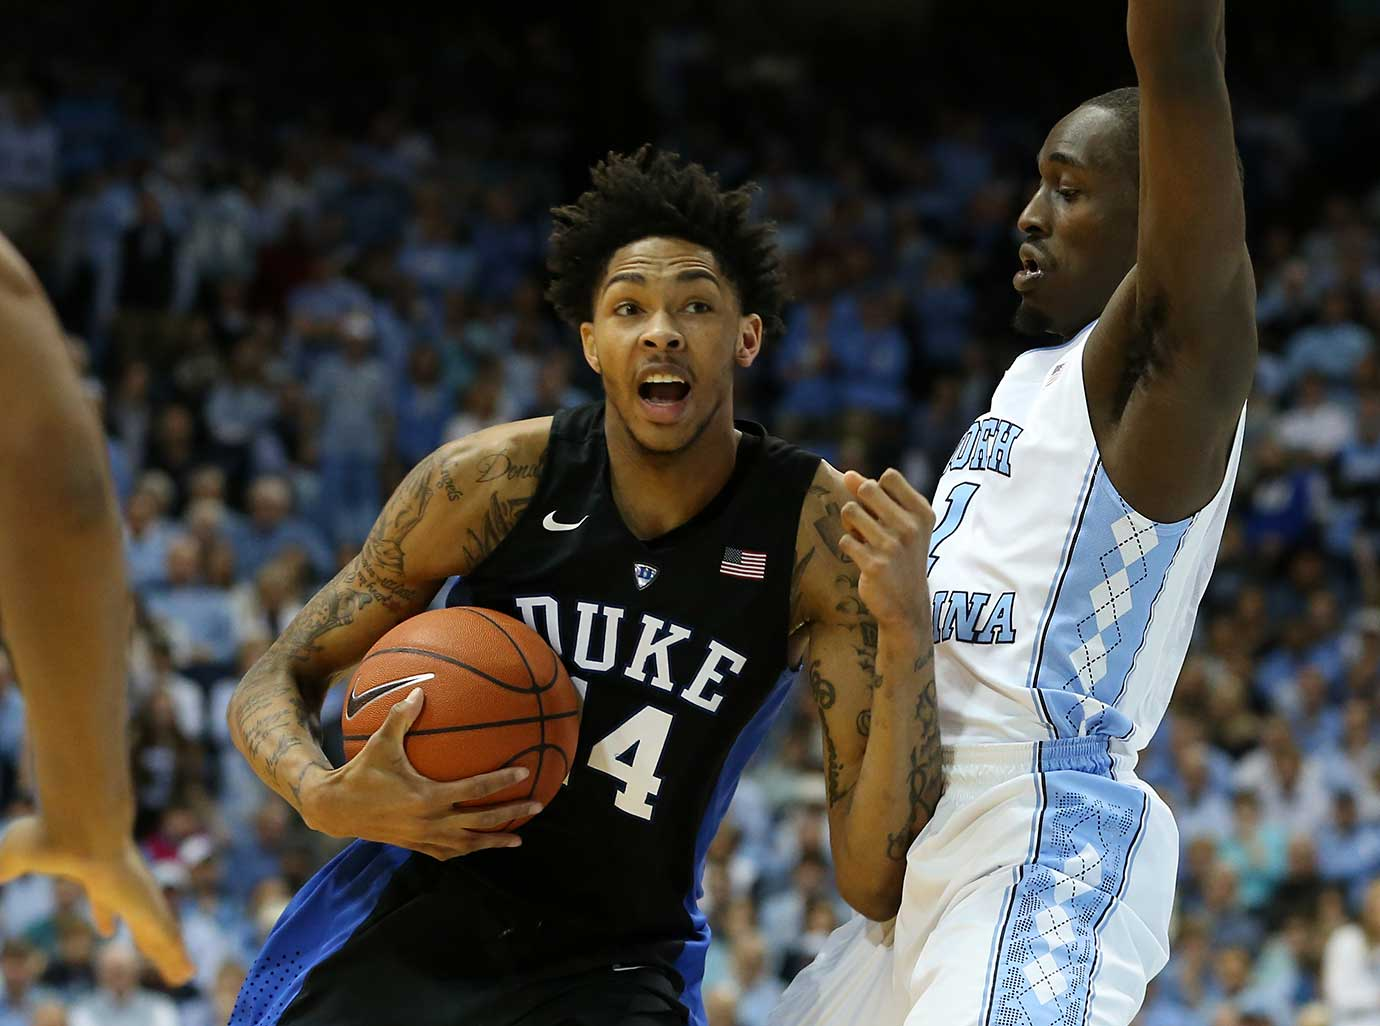 Duke freshman Brandon Ingram had 20 points and 10 rebounds in the win over North Carolina.